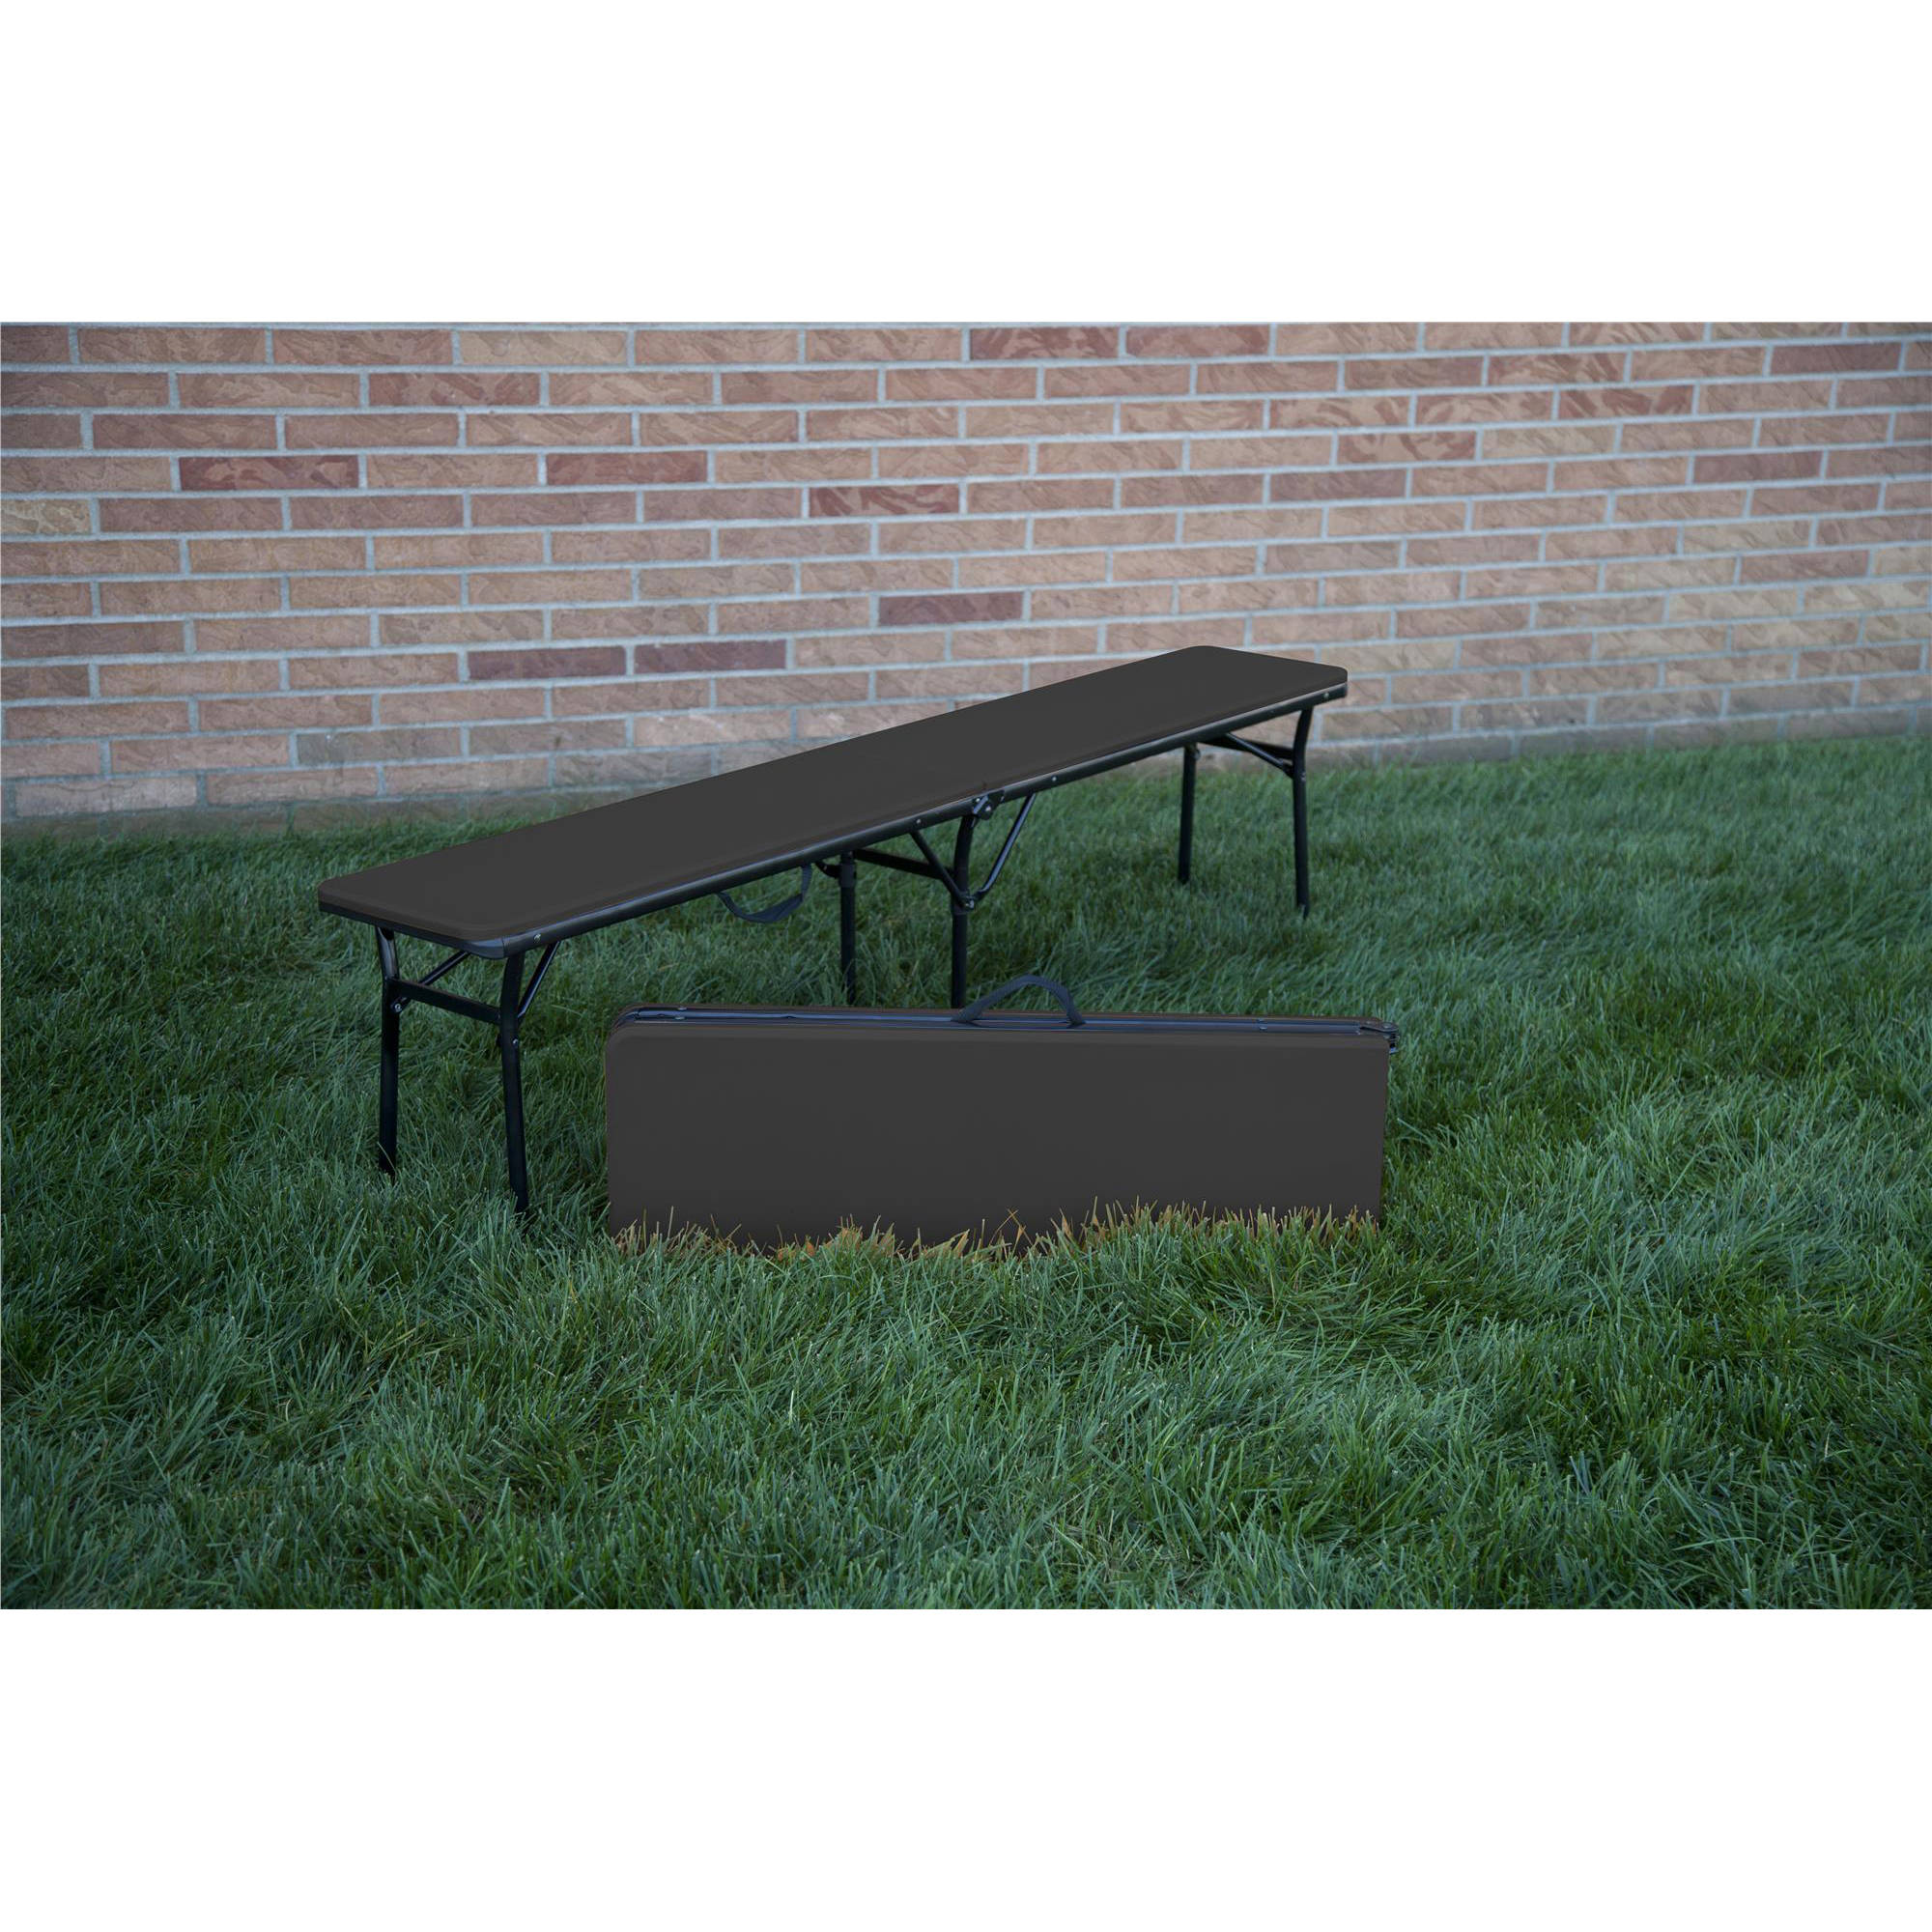 Cosco 6' Indoor Outdoor Center Fold Tailgate Bench with C...